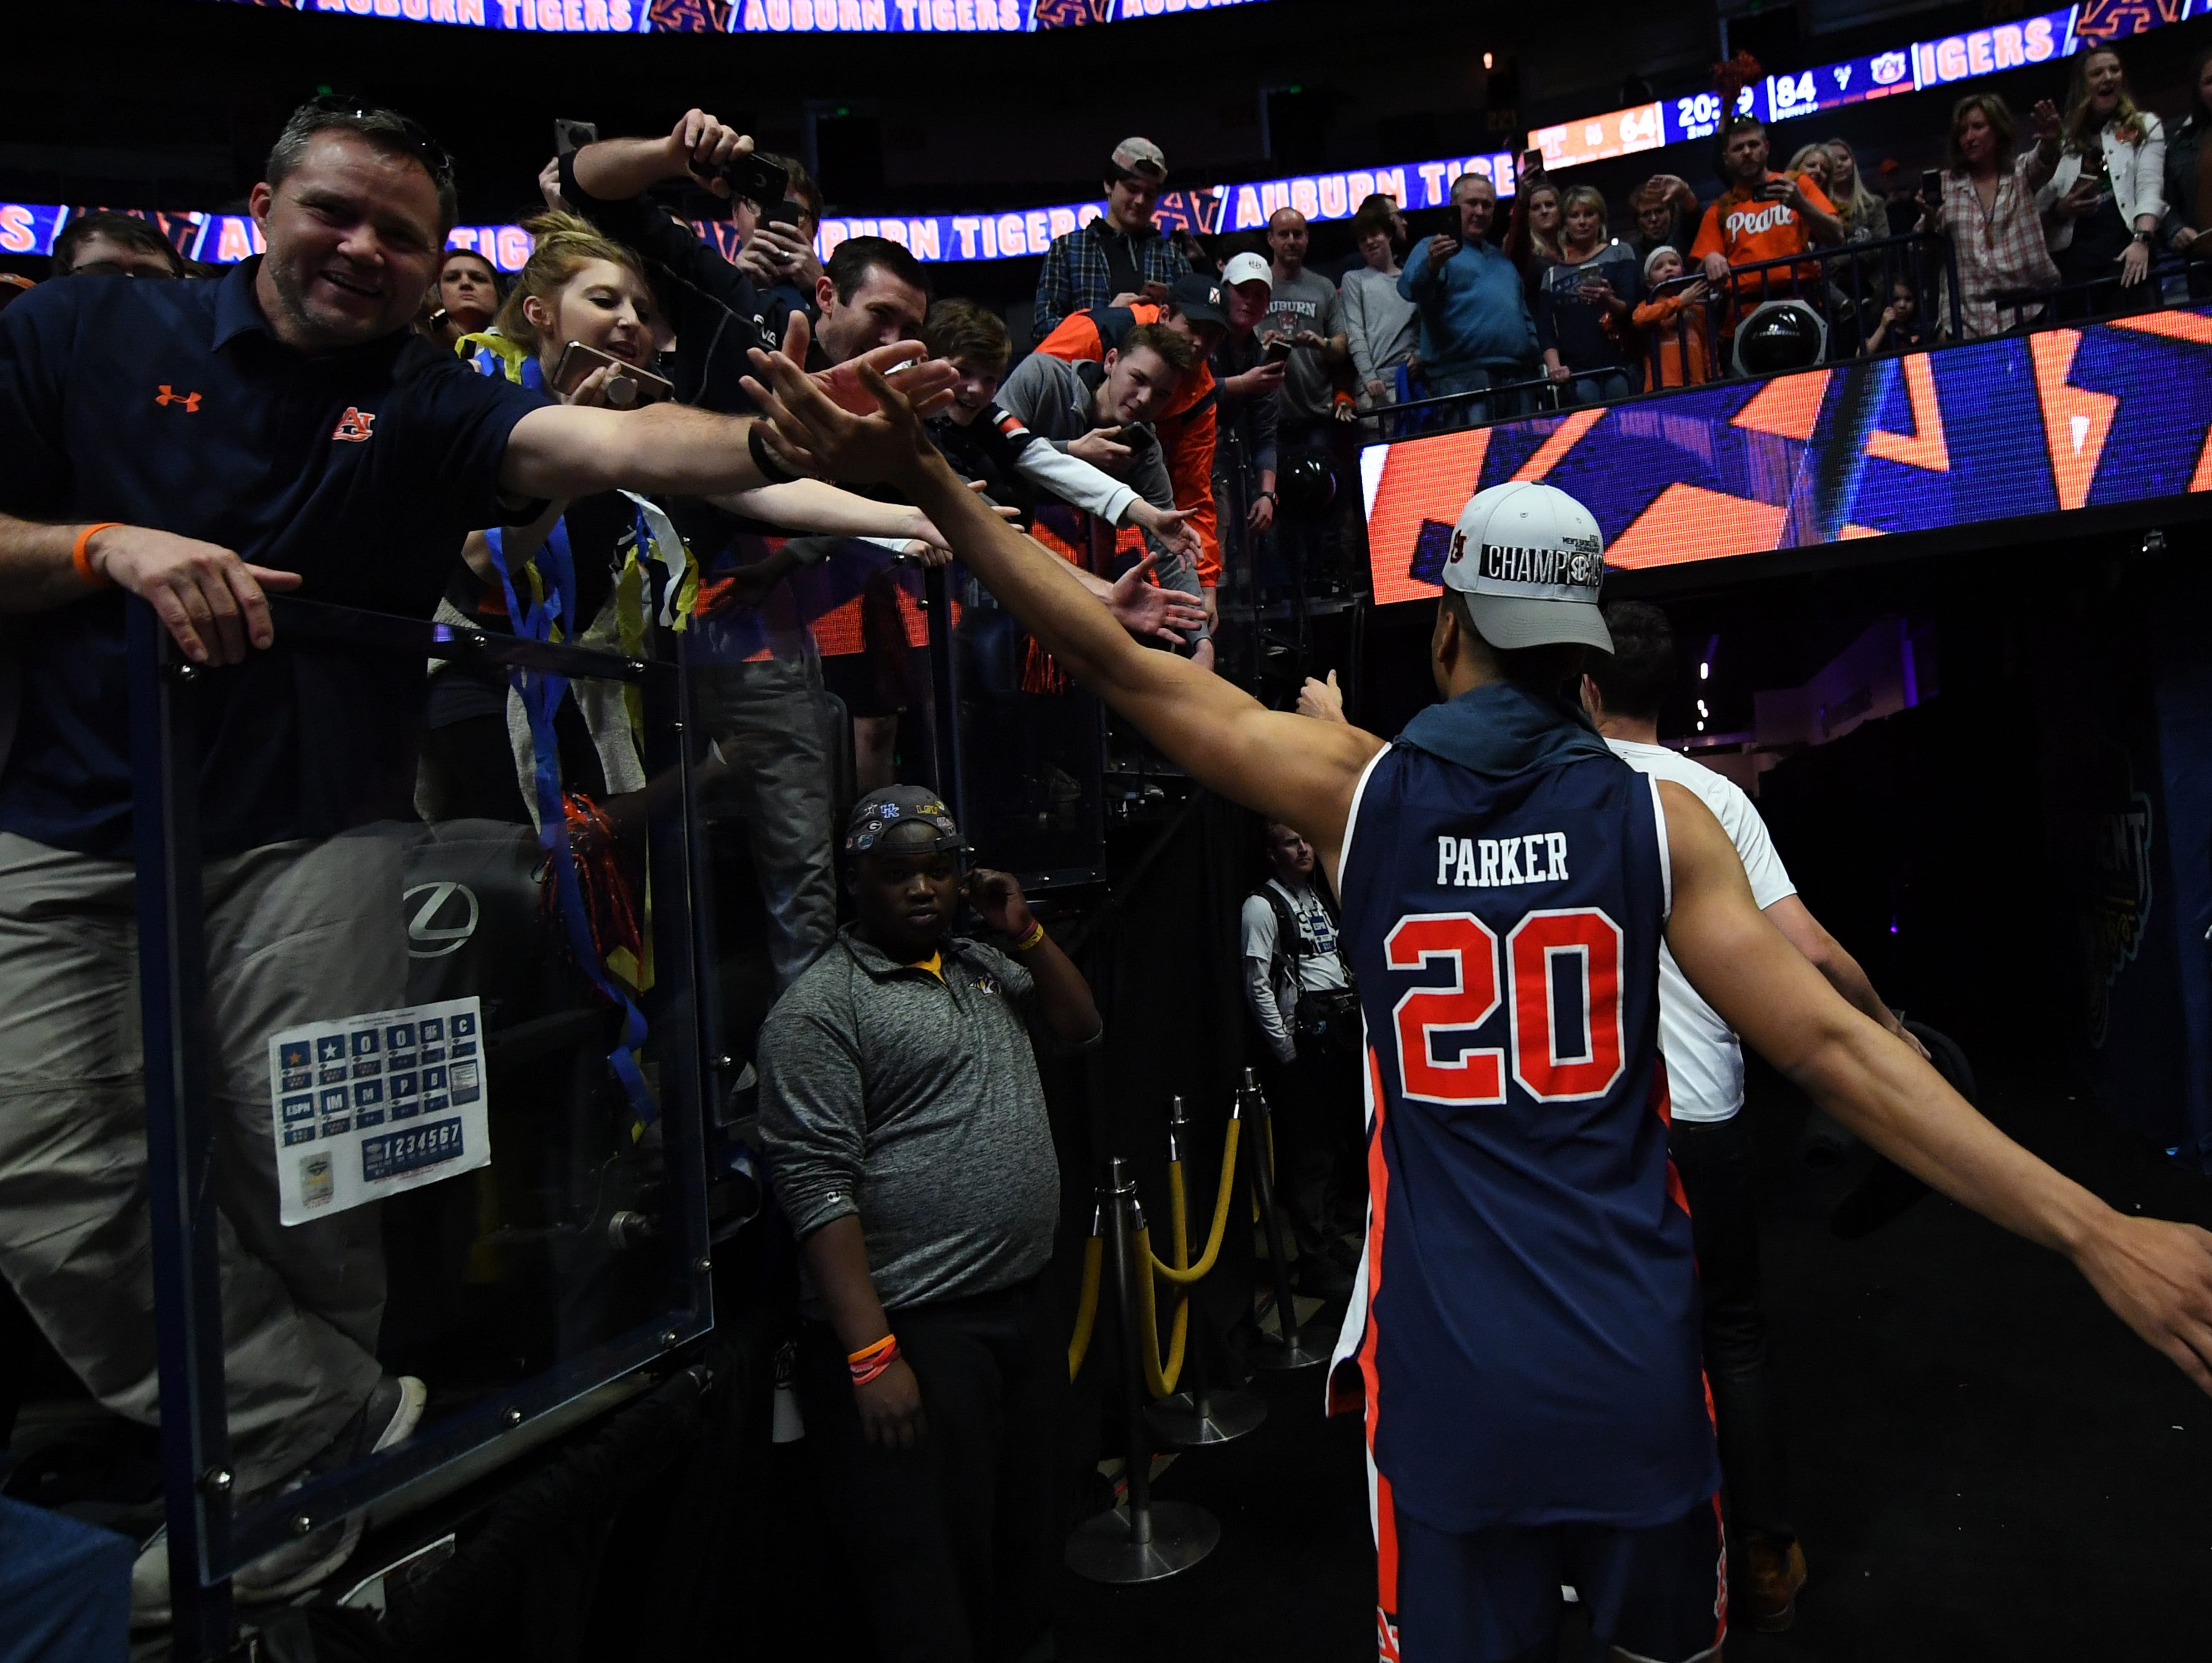 Mar 17, 2019; Nashville, TN, USA; Auburn Tigers forward Myles Parker (20) celebrates with fans as he leaves the court after beating the Tennessee Volunteers in the SEC conference tournament championship game at Bridgestone Arena. Mandatory Credit: Christopher Hanewinckel-USA TODAY Sports